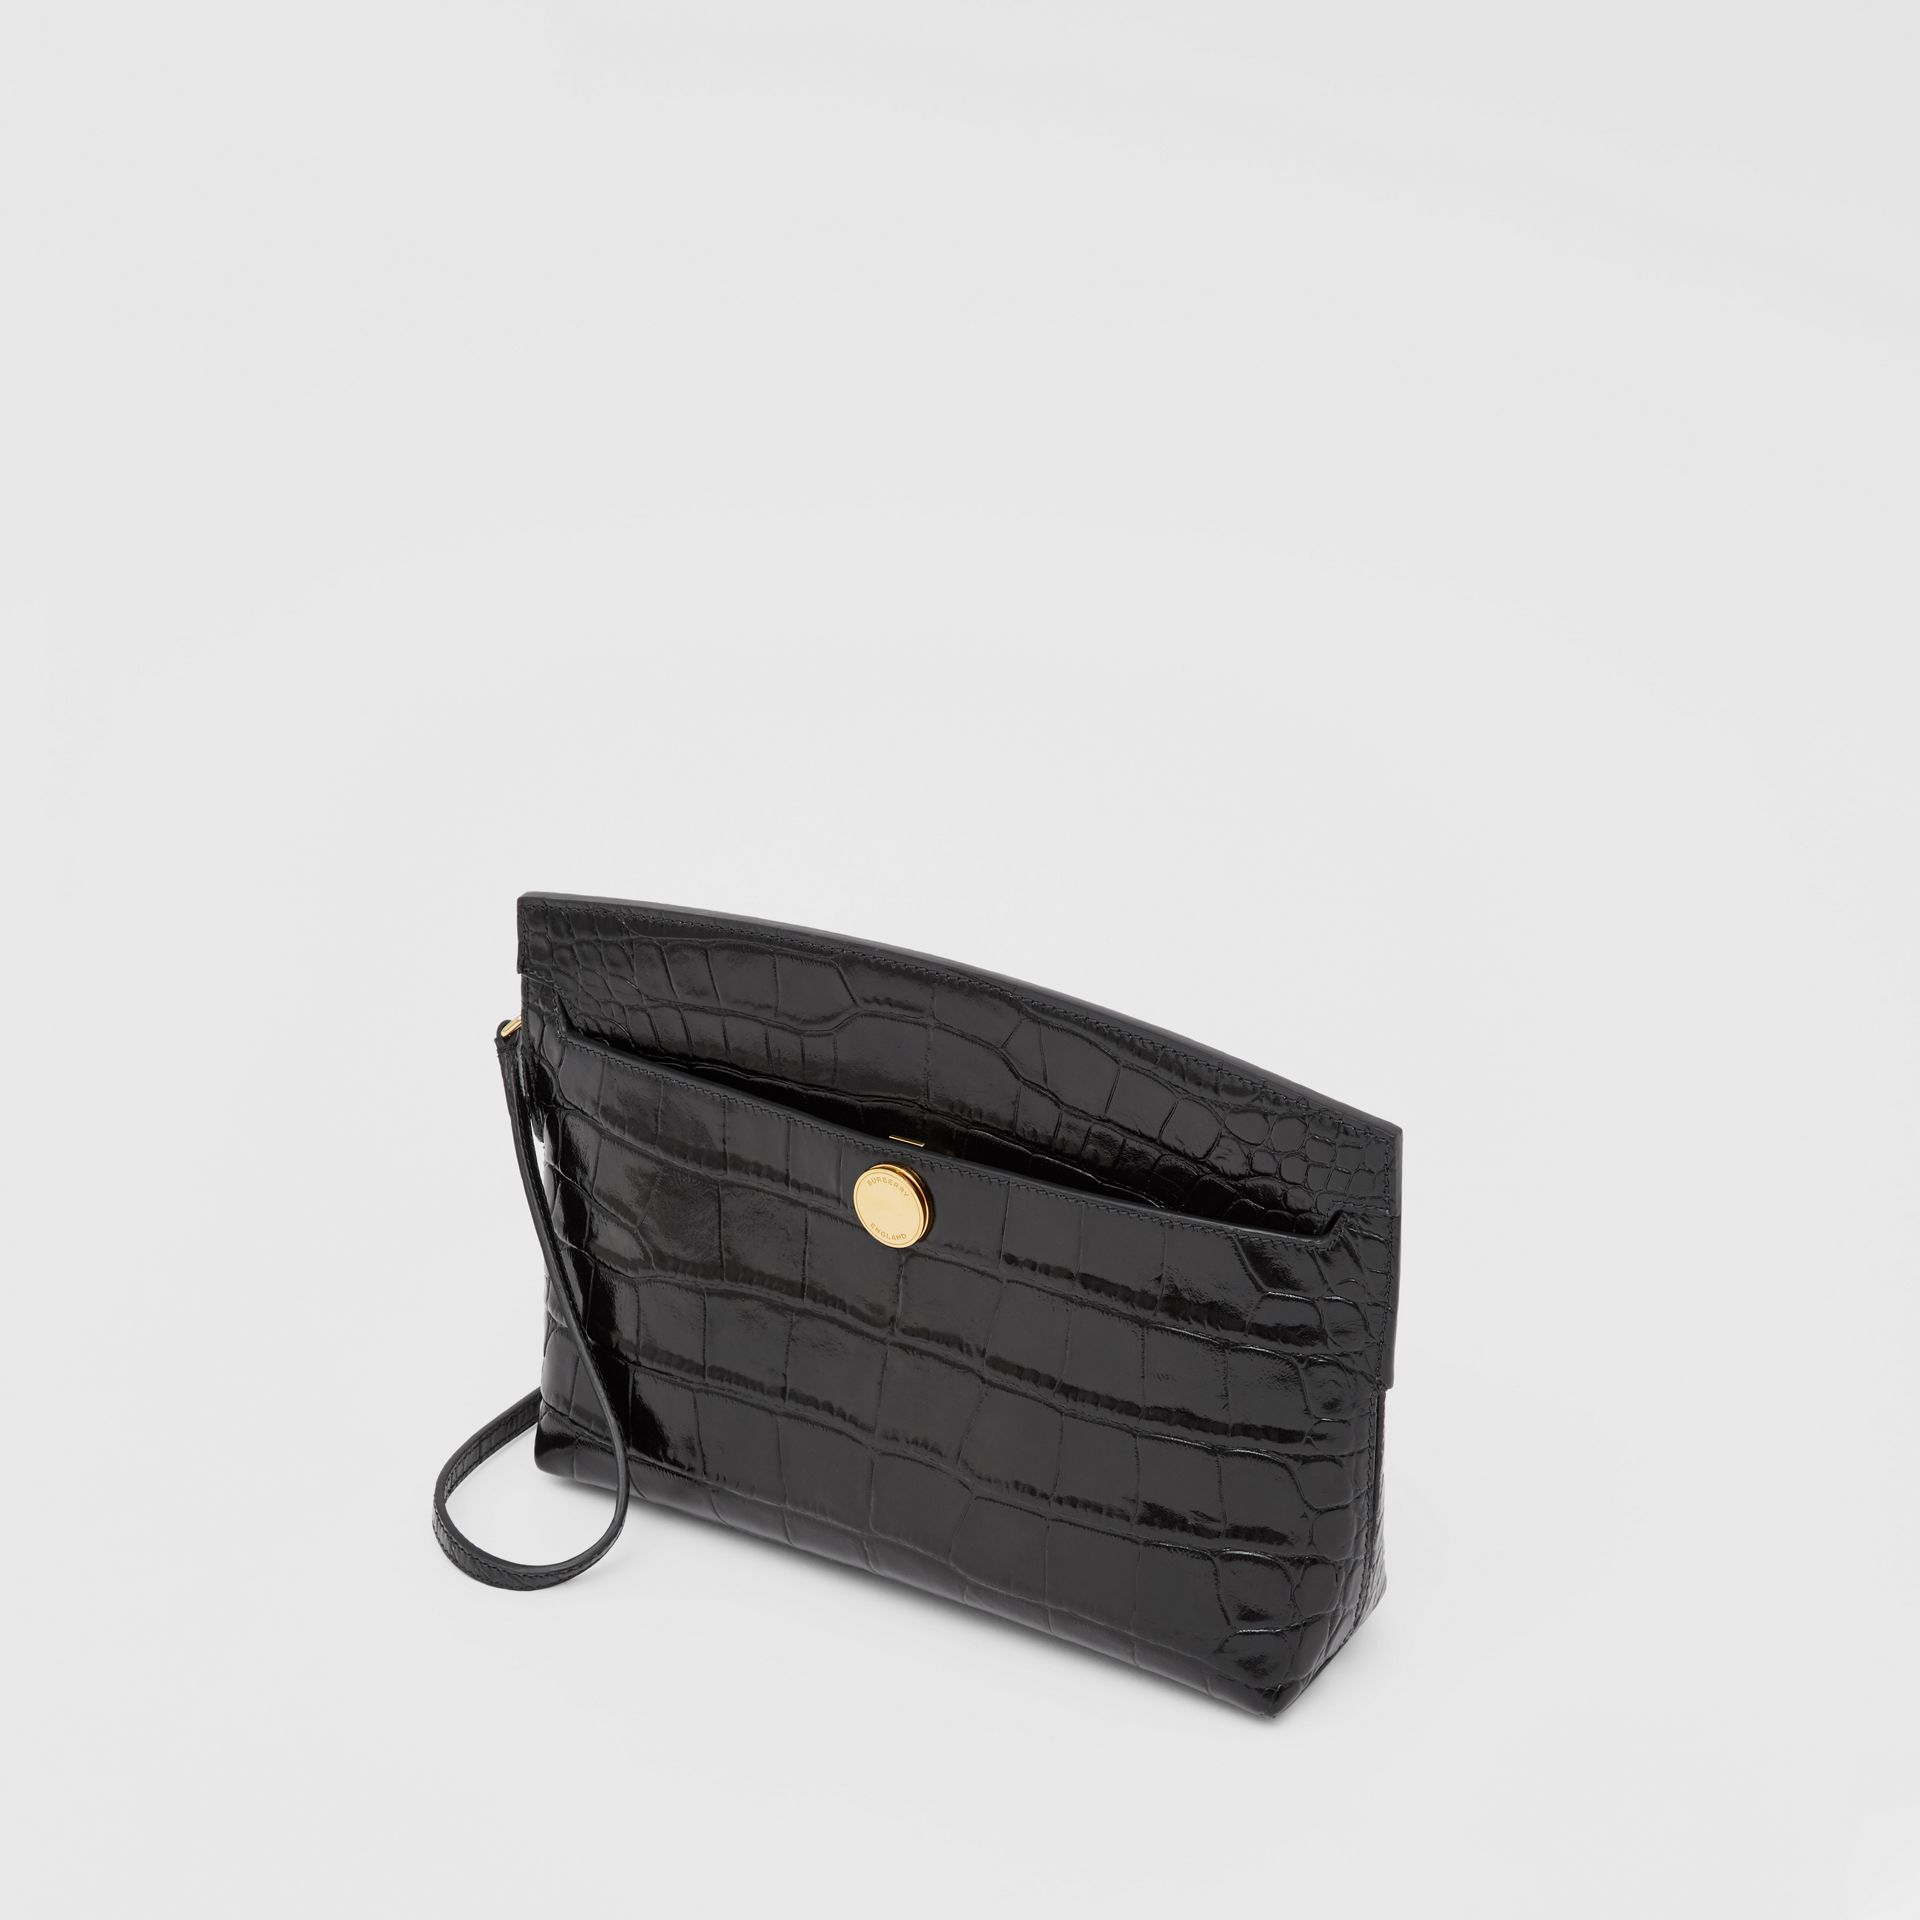 Embossed Leather Society Clutch in Black - Women | Burberry Singapore - gallery image 3